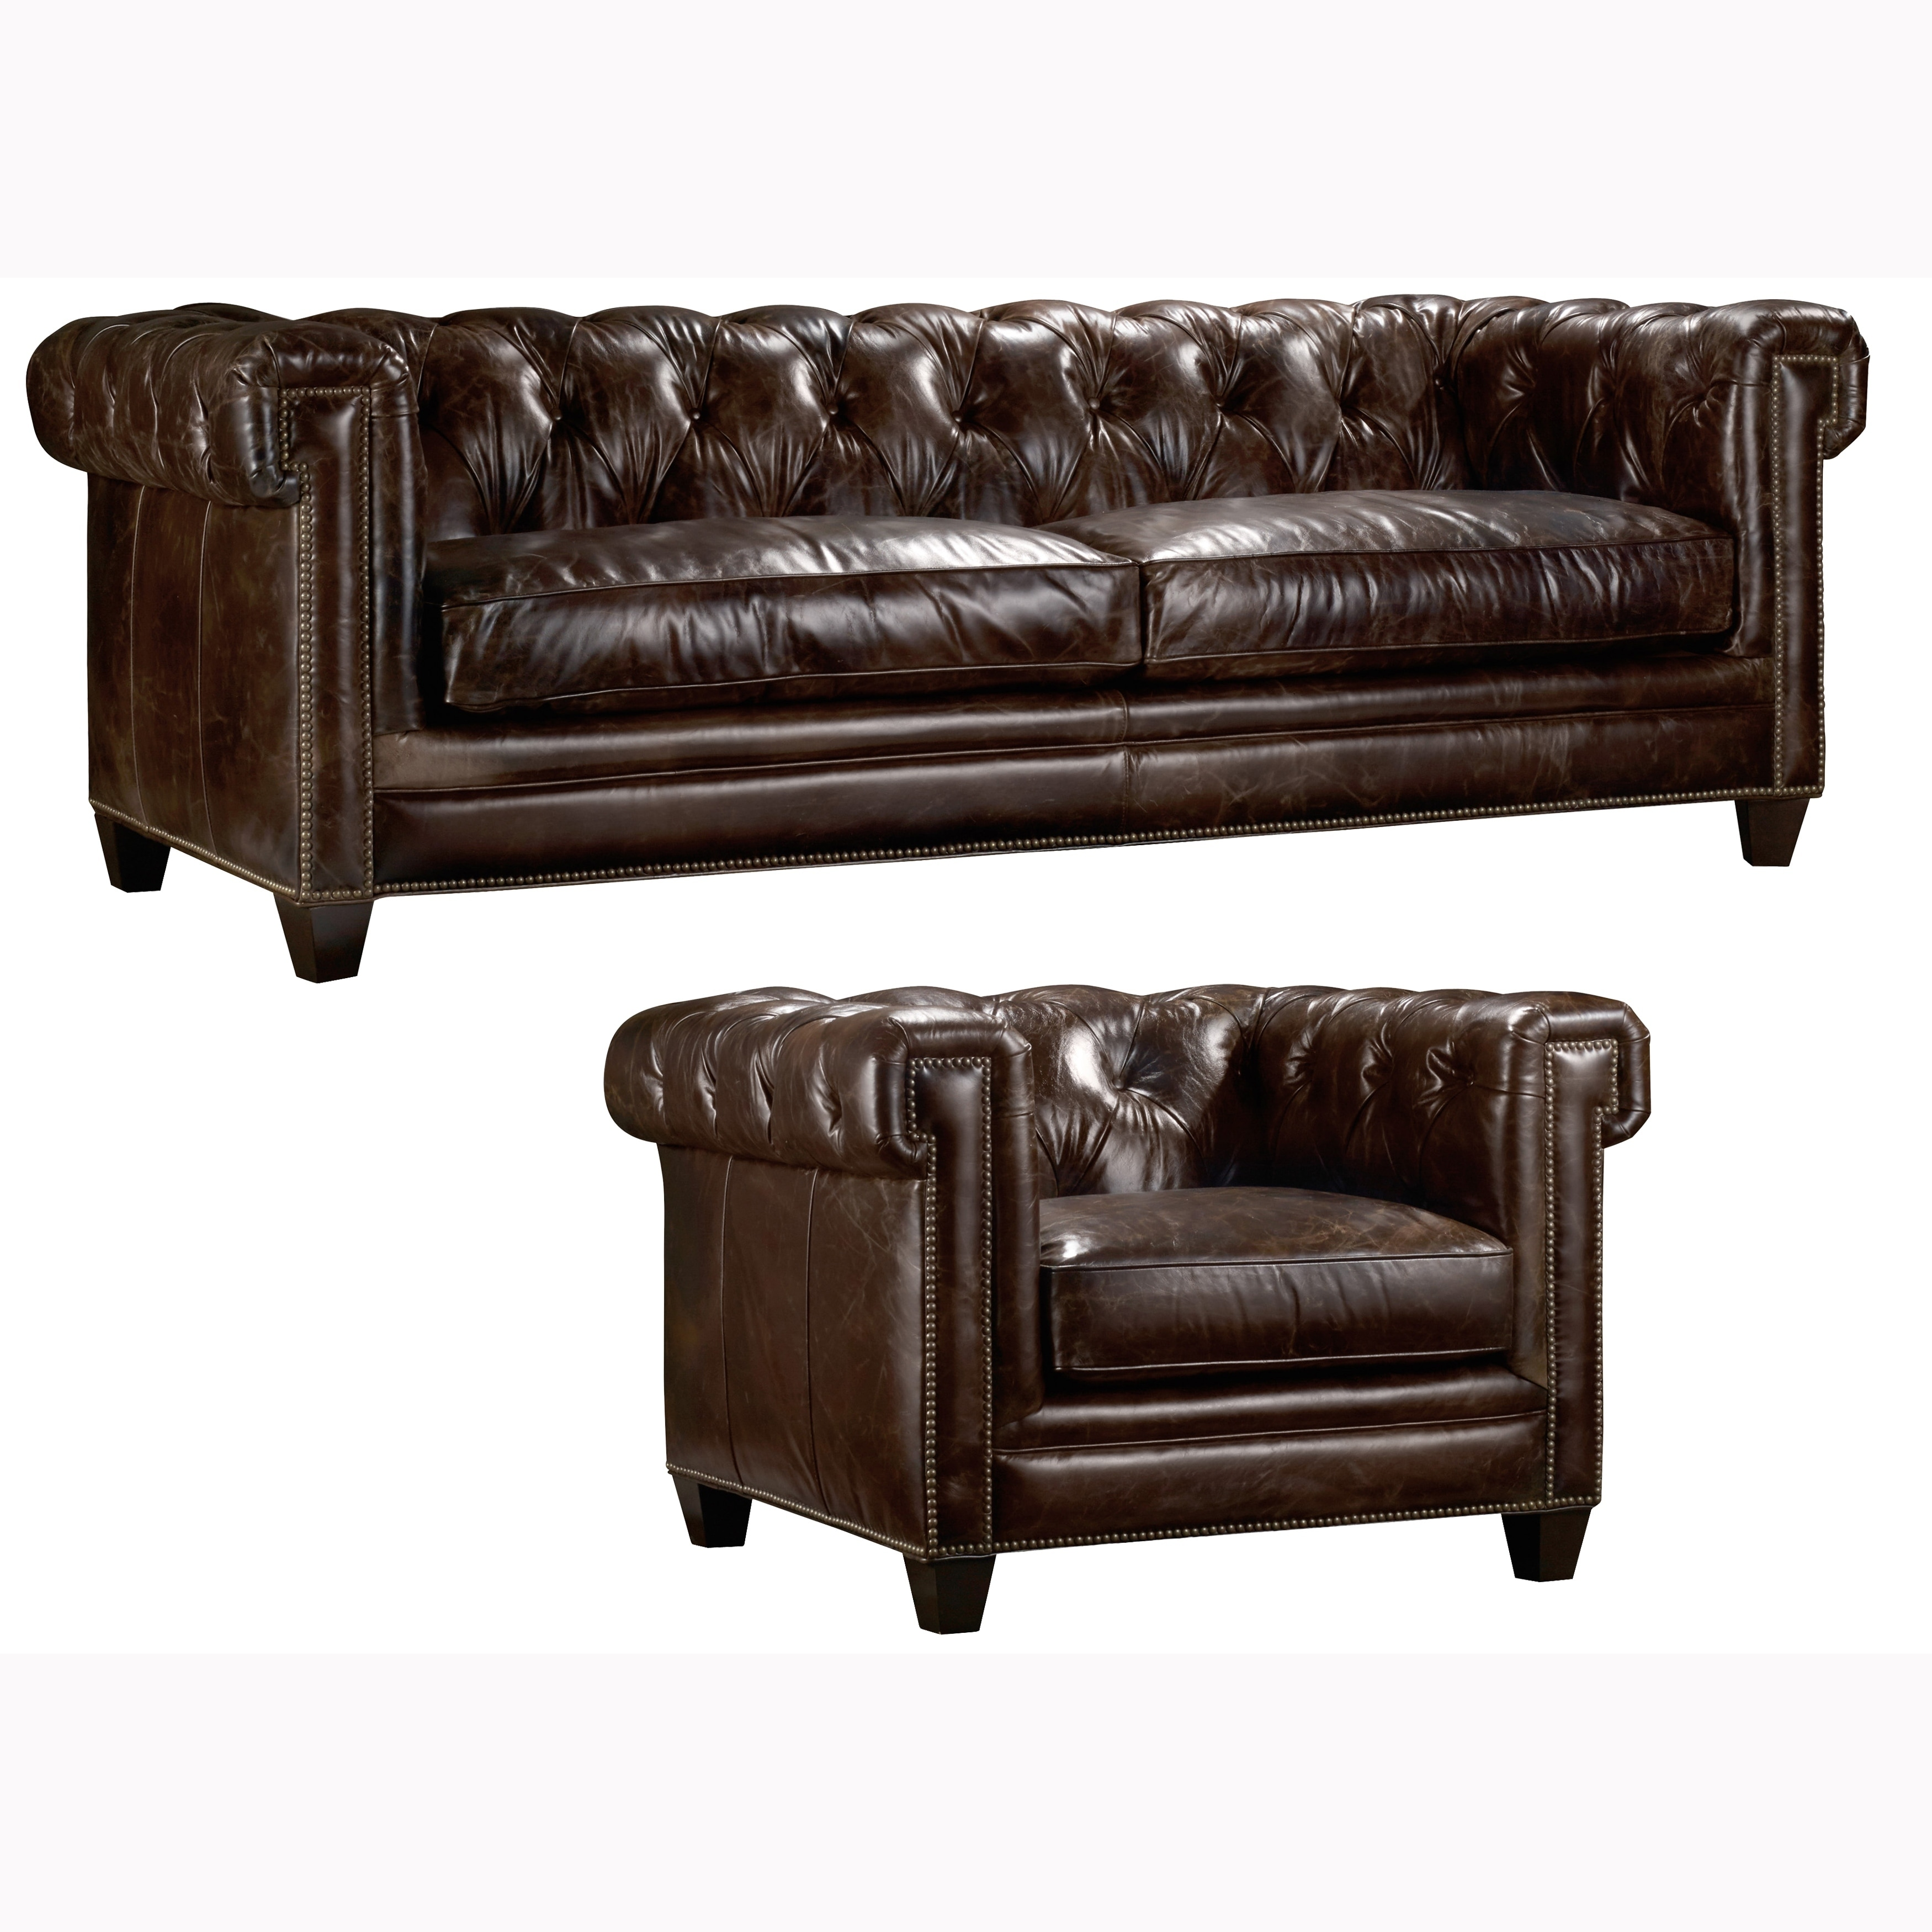 - Shop Orlando Tufted Brown Top Grain Leather Chesterfield Sofa And